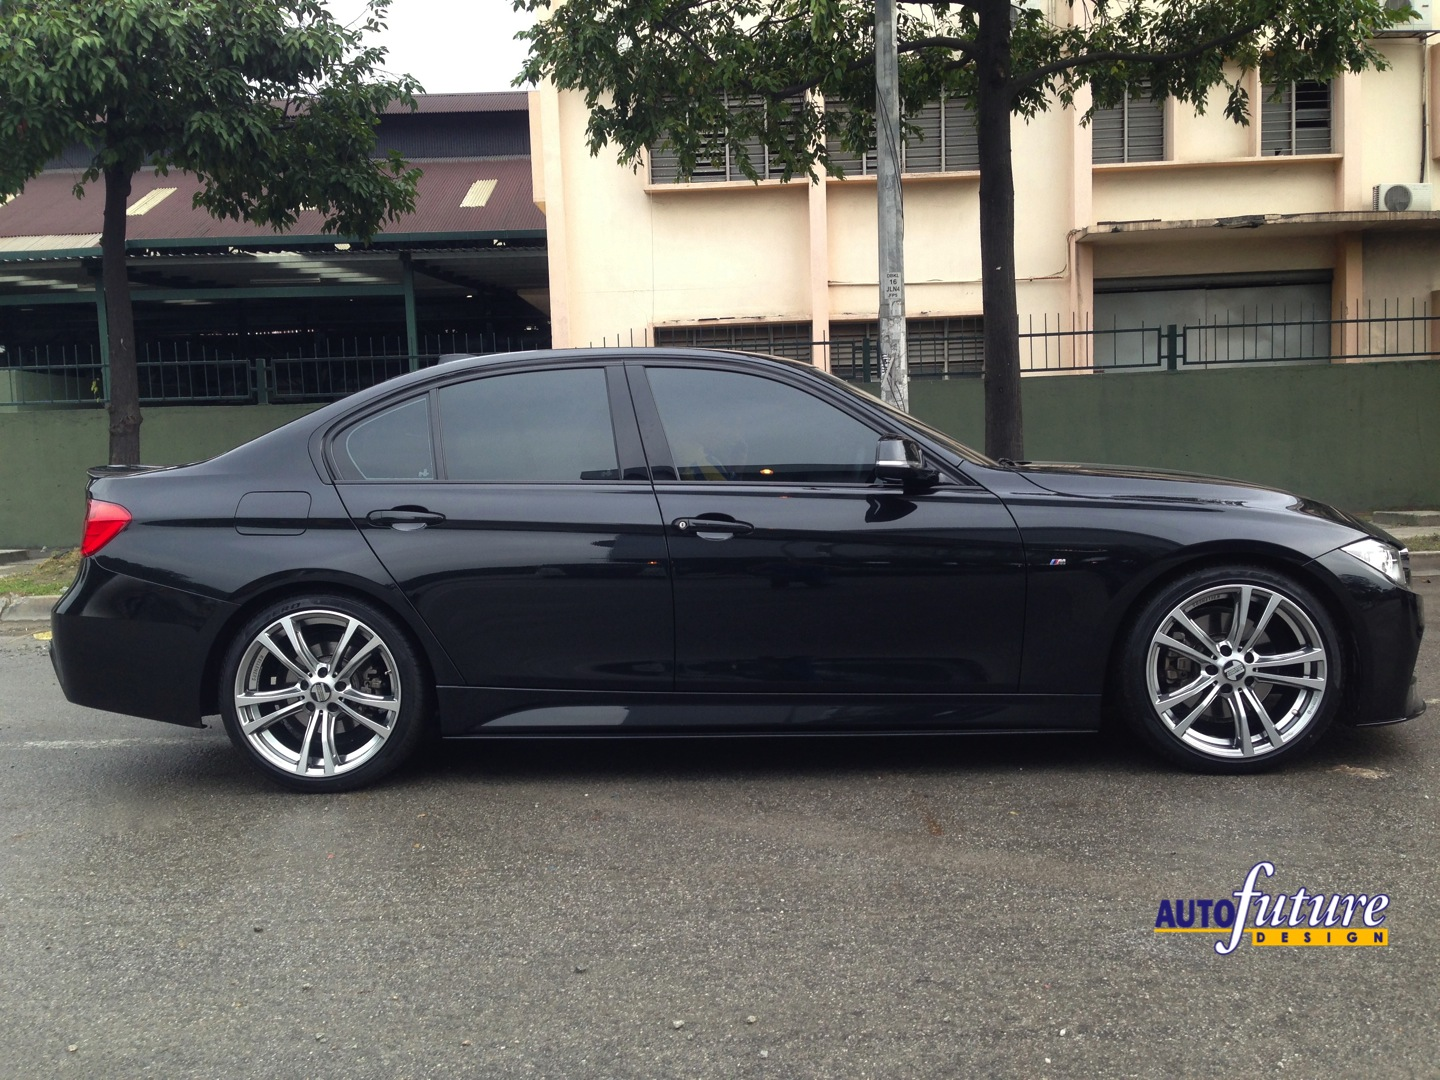 Bmw F30 On Kelleners Sport Munchen Wheels Autofuture